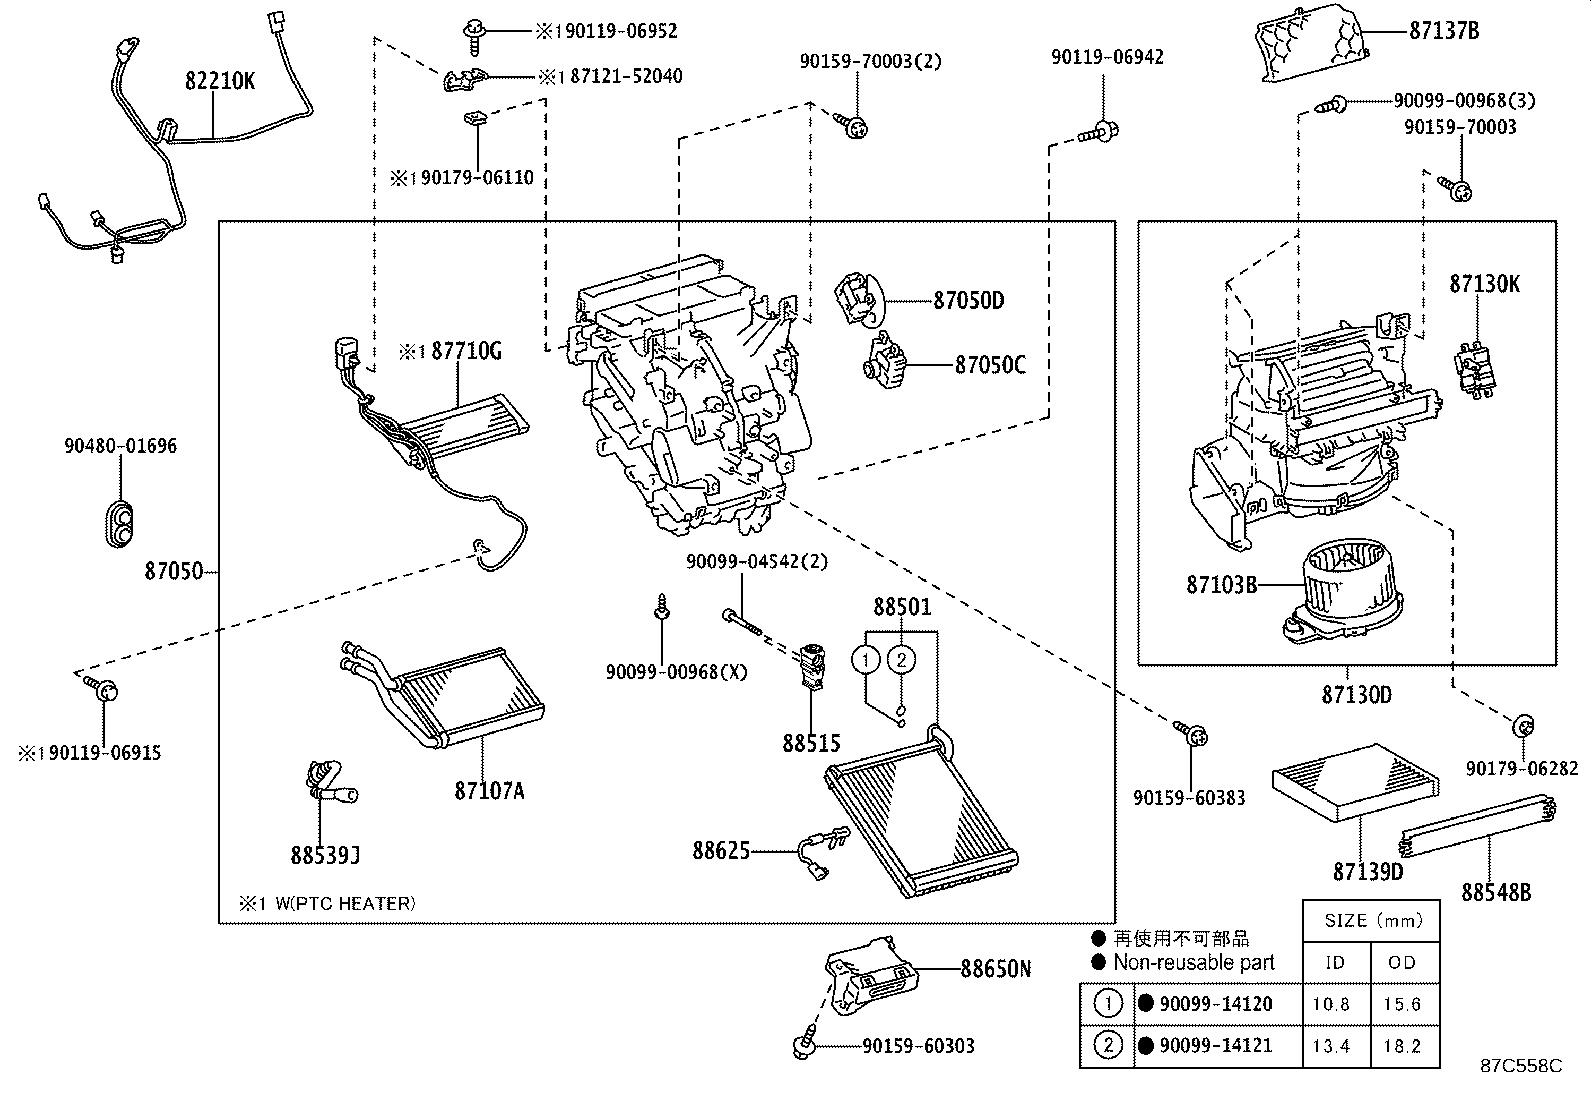 Toyota Prius c Hvac system wiring harness. Harness, air